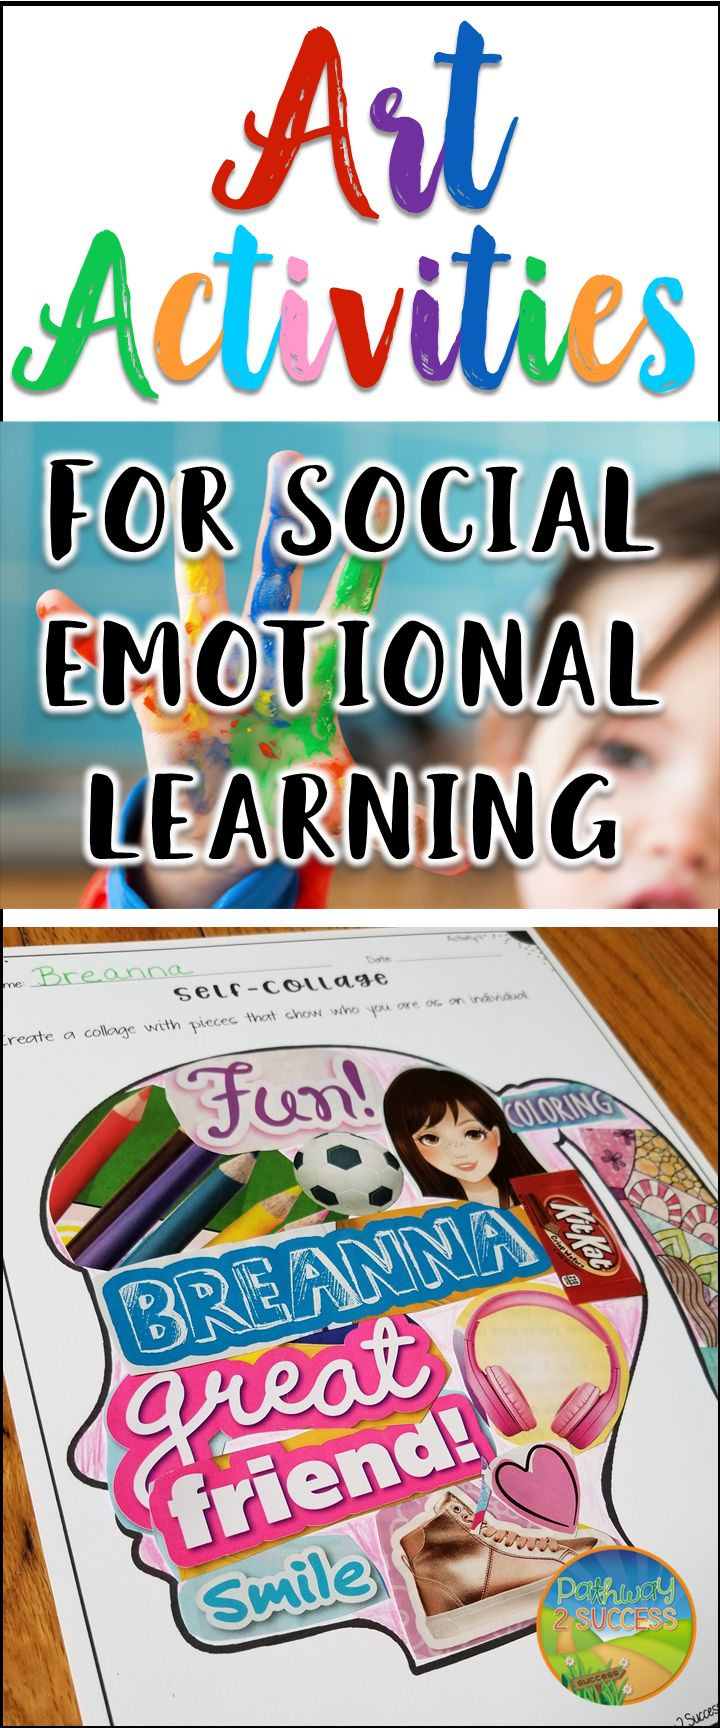 Use art and hands on activities to teach critical social emotional skills including confidence, self-awareness, social skills, relationship building, collaboration, and more.